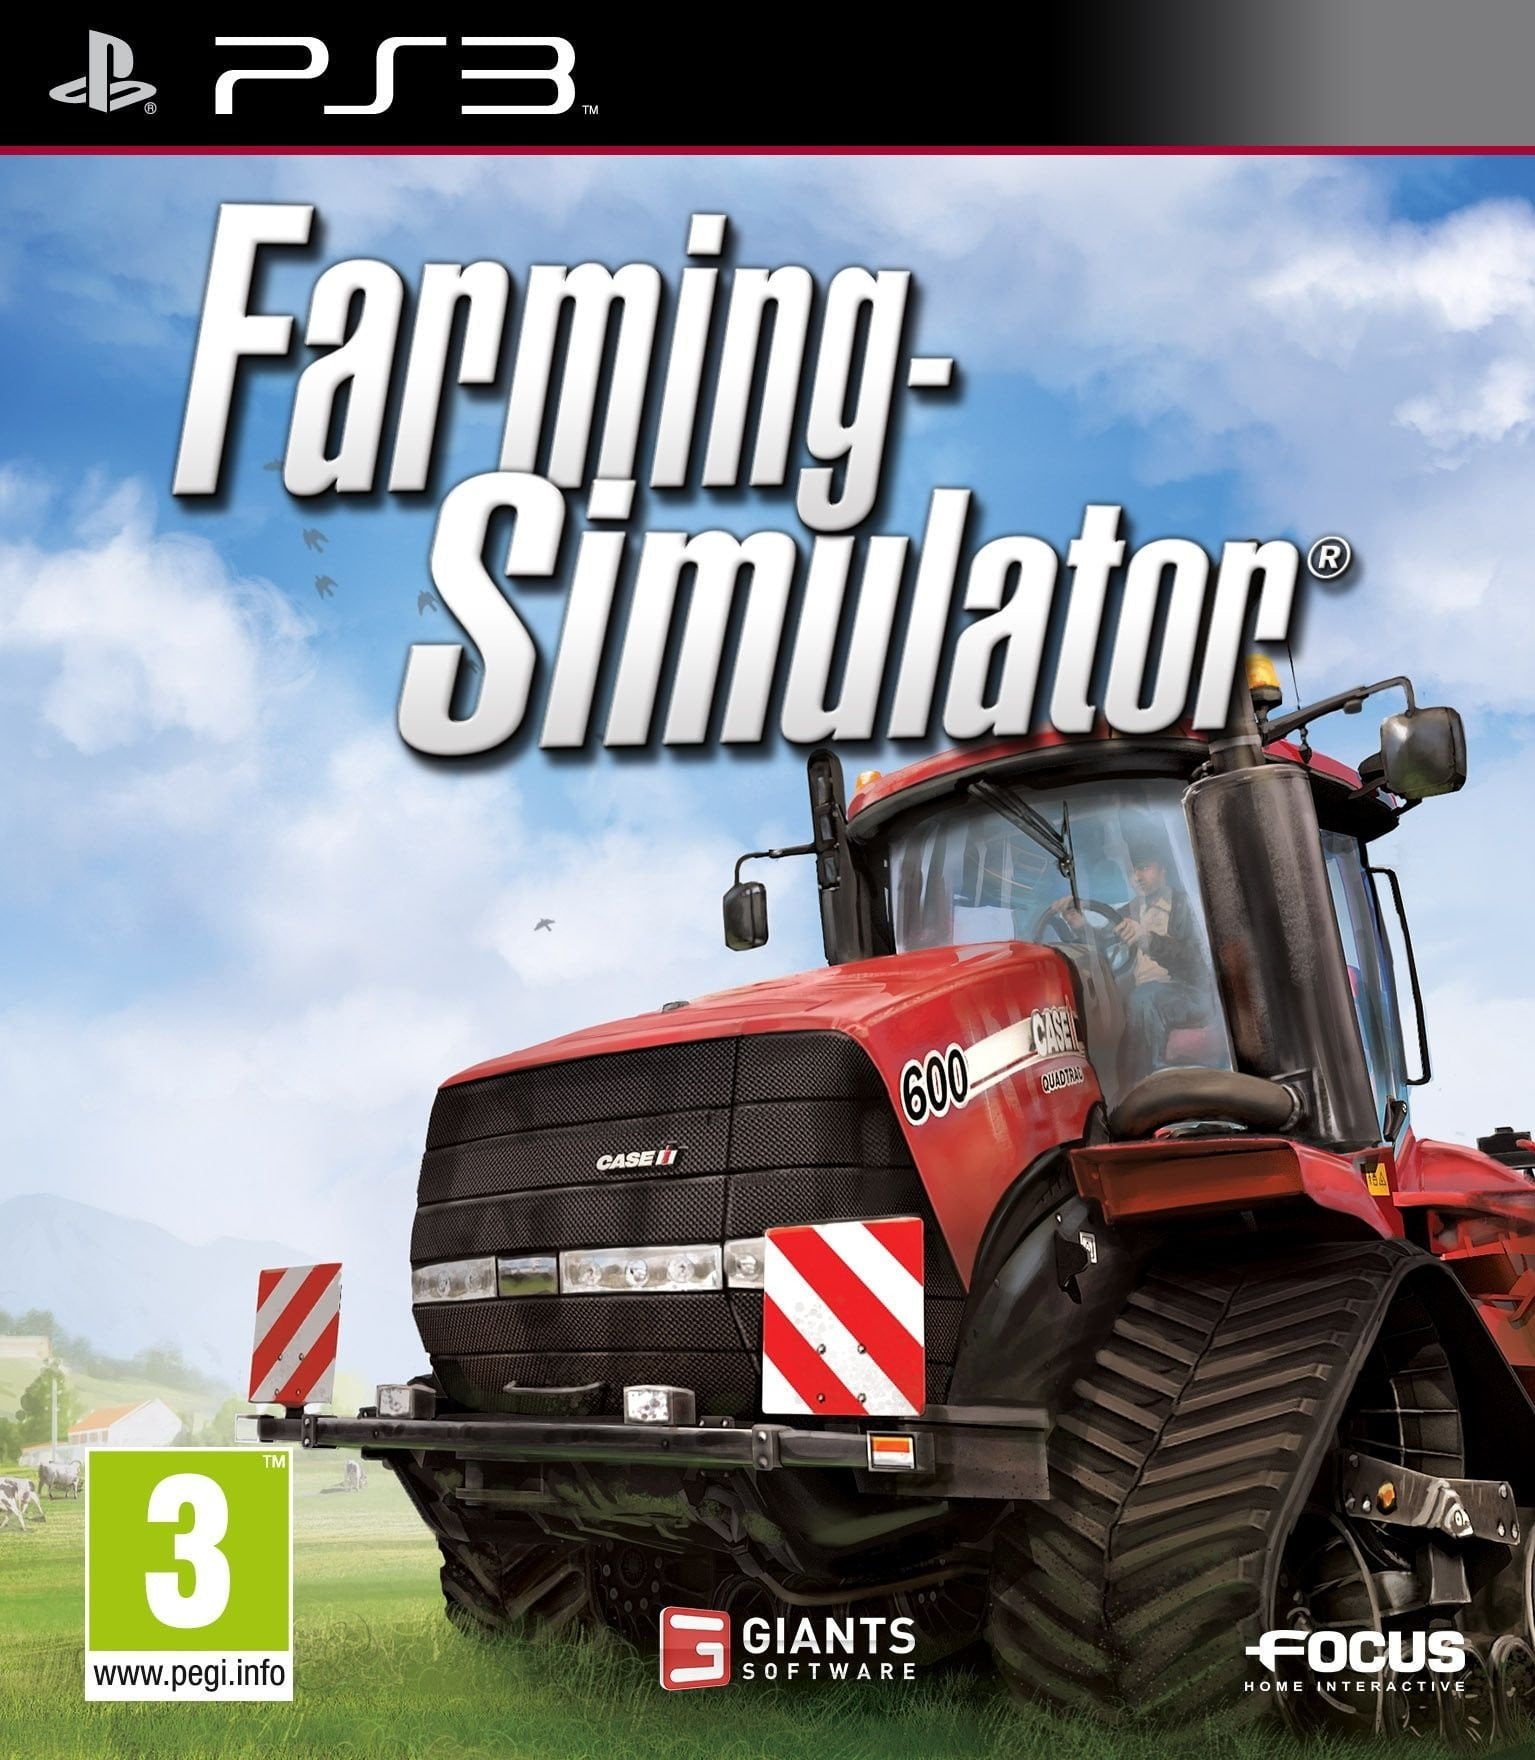 Buy Farmin simulator 15 PS3 Game in Egypt - Shamy Stores